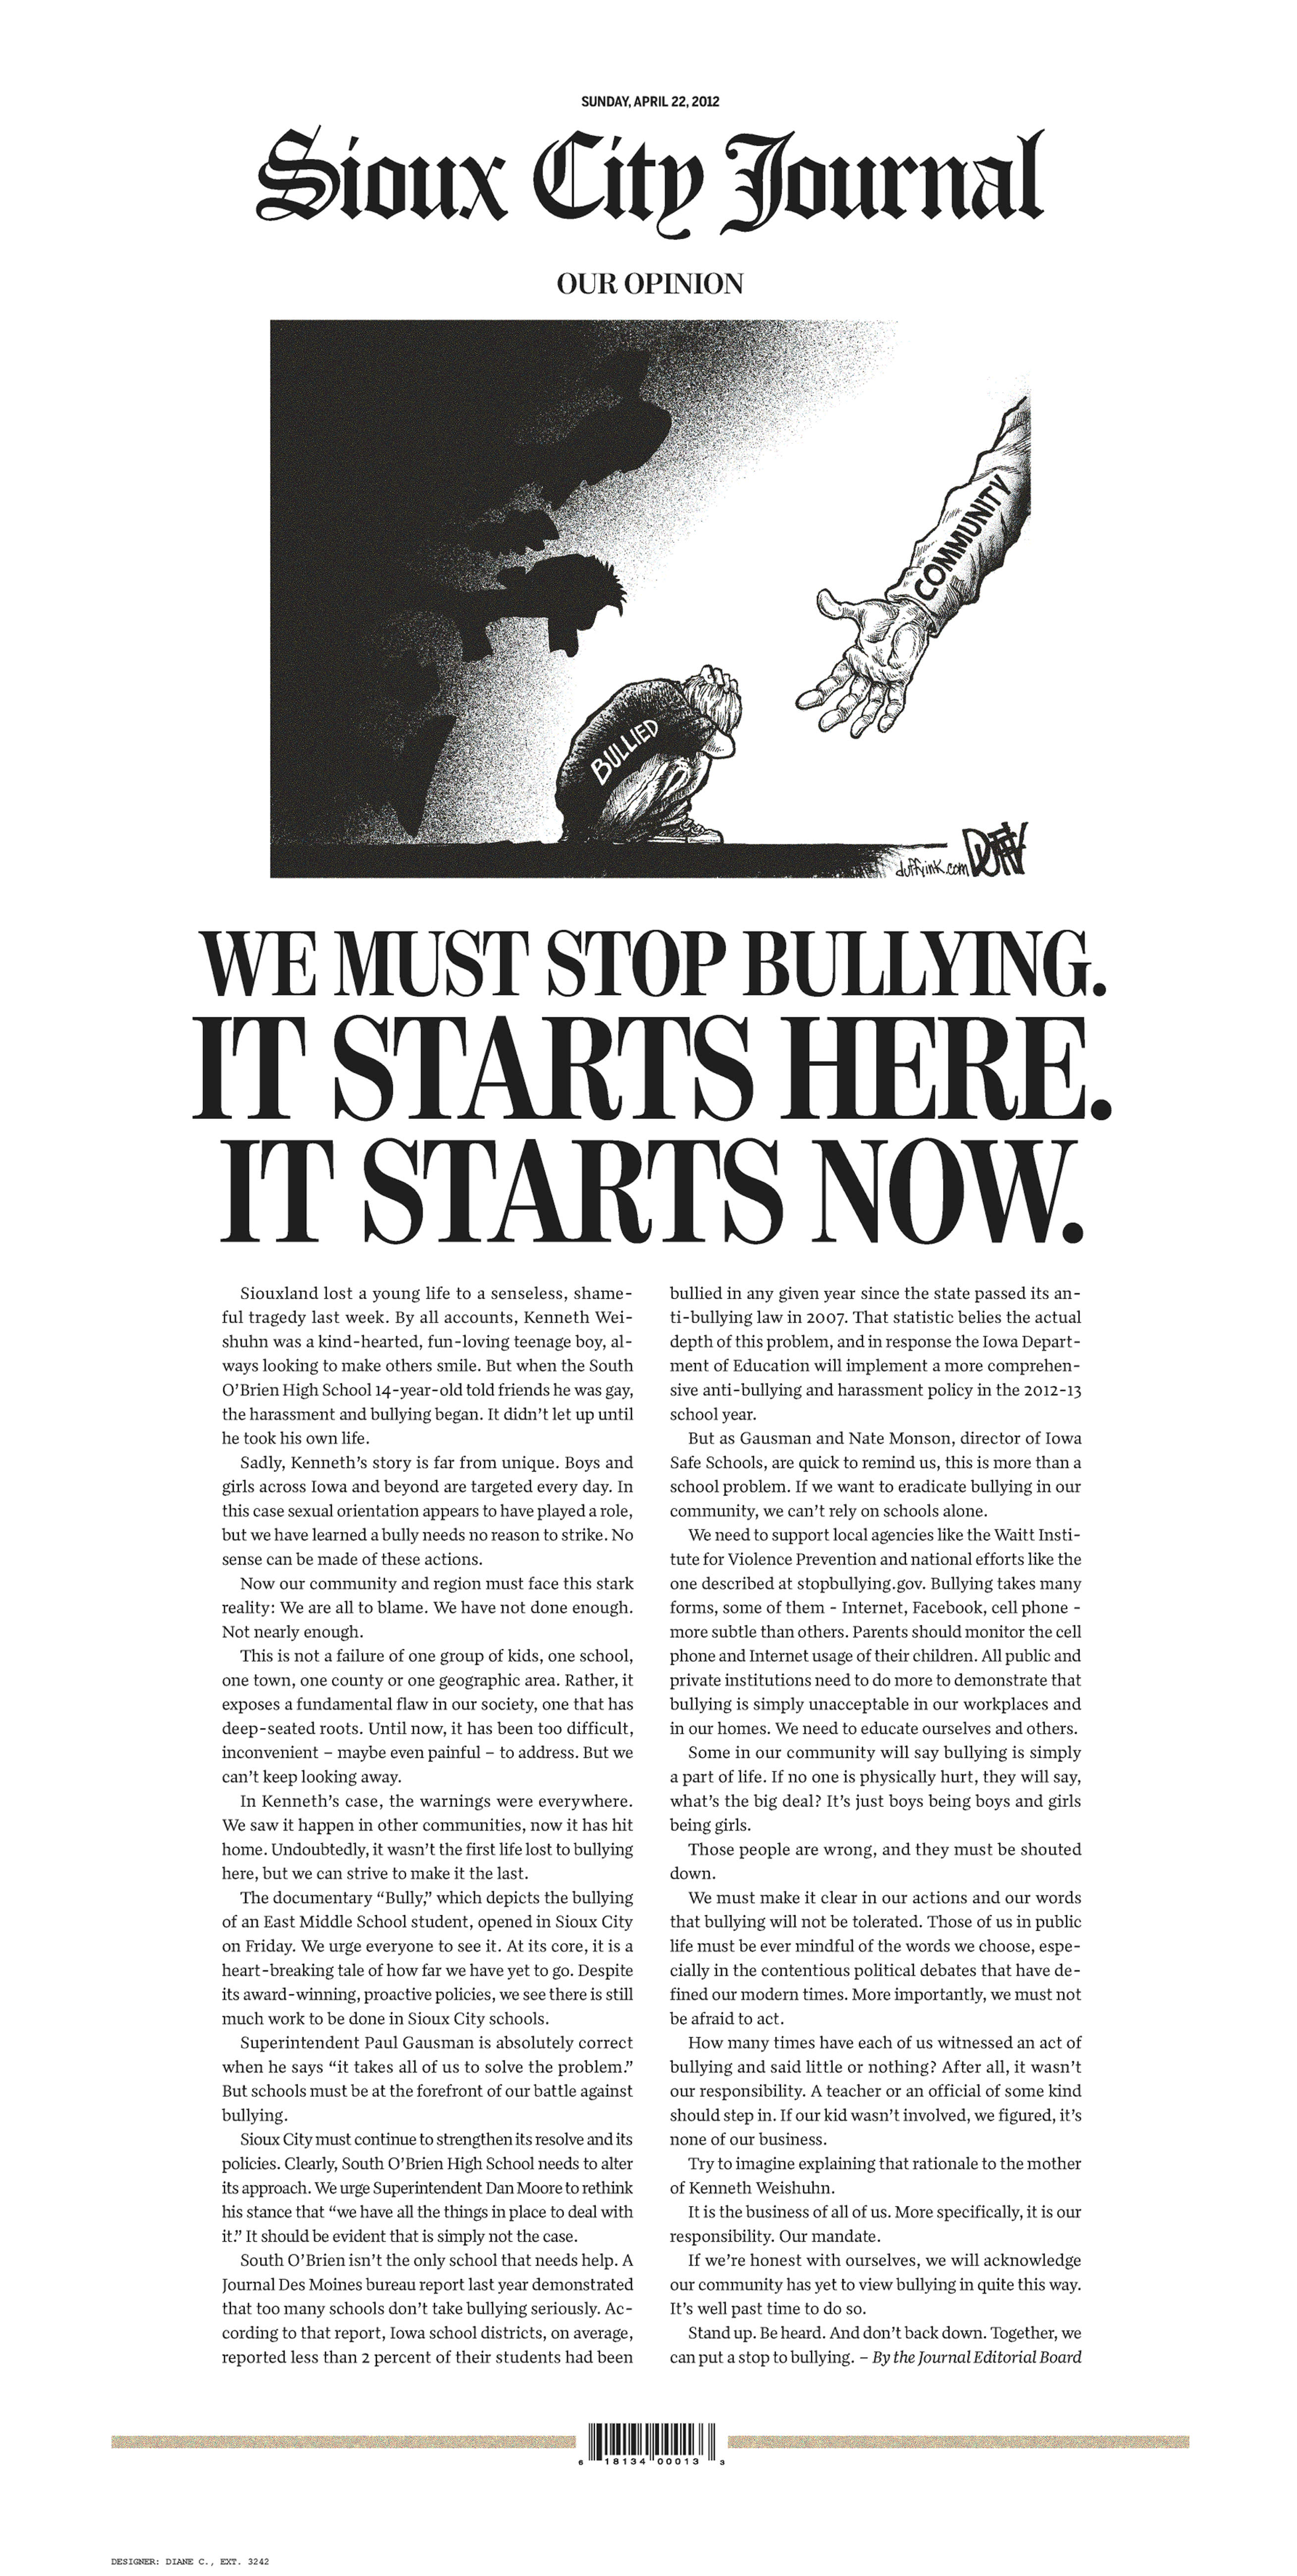 "This image shows the front page of The Sioux City Journal's Sunday, April 22, 2012, edition, featuring a full-page piece to an anti-bullying editorial after a gay teen committed suicide. The Sioux City Journal's front-page opinion piece calls on the community to be pro-active in stopping bullying and urges members to learn more about the problem by seeing the acclaimed new film, ""Bully,"" which documents the harassment of Sioux City middle school student. Relatives have said 14-year-old Kenneth Weishuhn Jr. suffered intense harassment, including threatening cellphone calls and nasty comments posted online, after coming out to family and friends about a month ago. He died April 15 from what the local sheriff's office described only as a ""self-inflicted injury."" (AP Photo/The Sioux City Journal)"